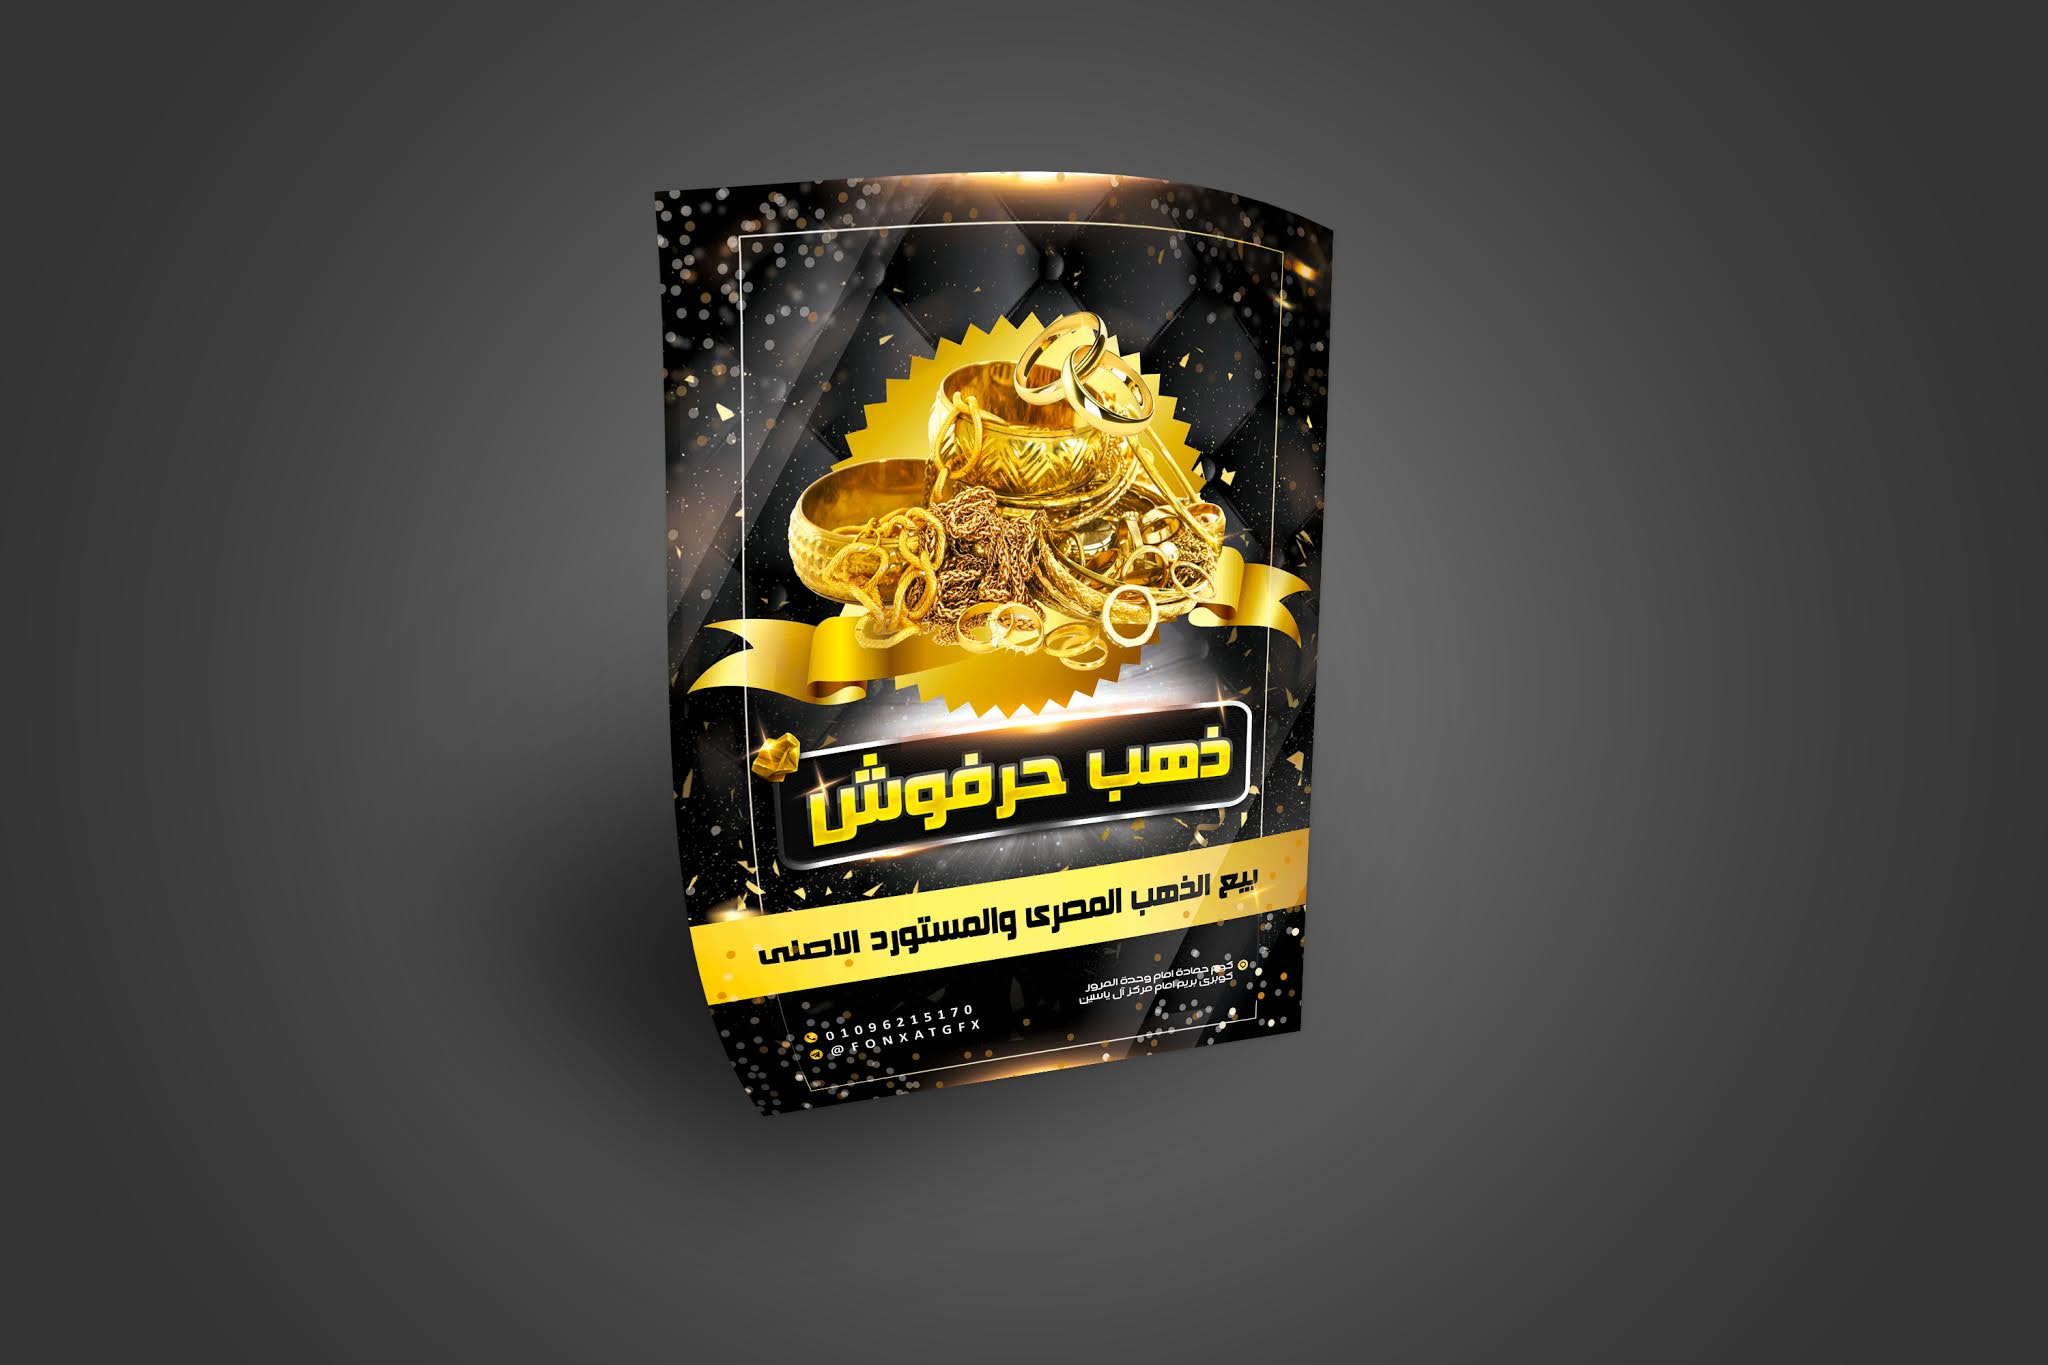 PSD decision of special deviation flyers with jewels according to the colors of black and gold